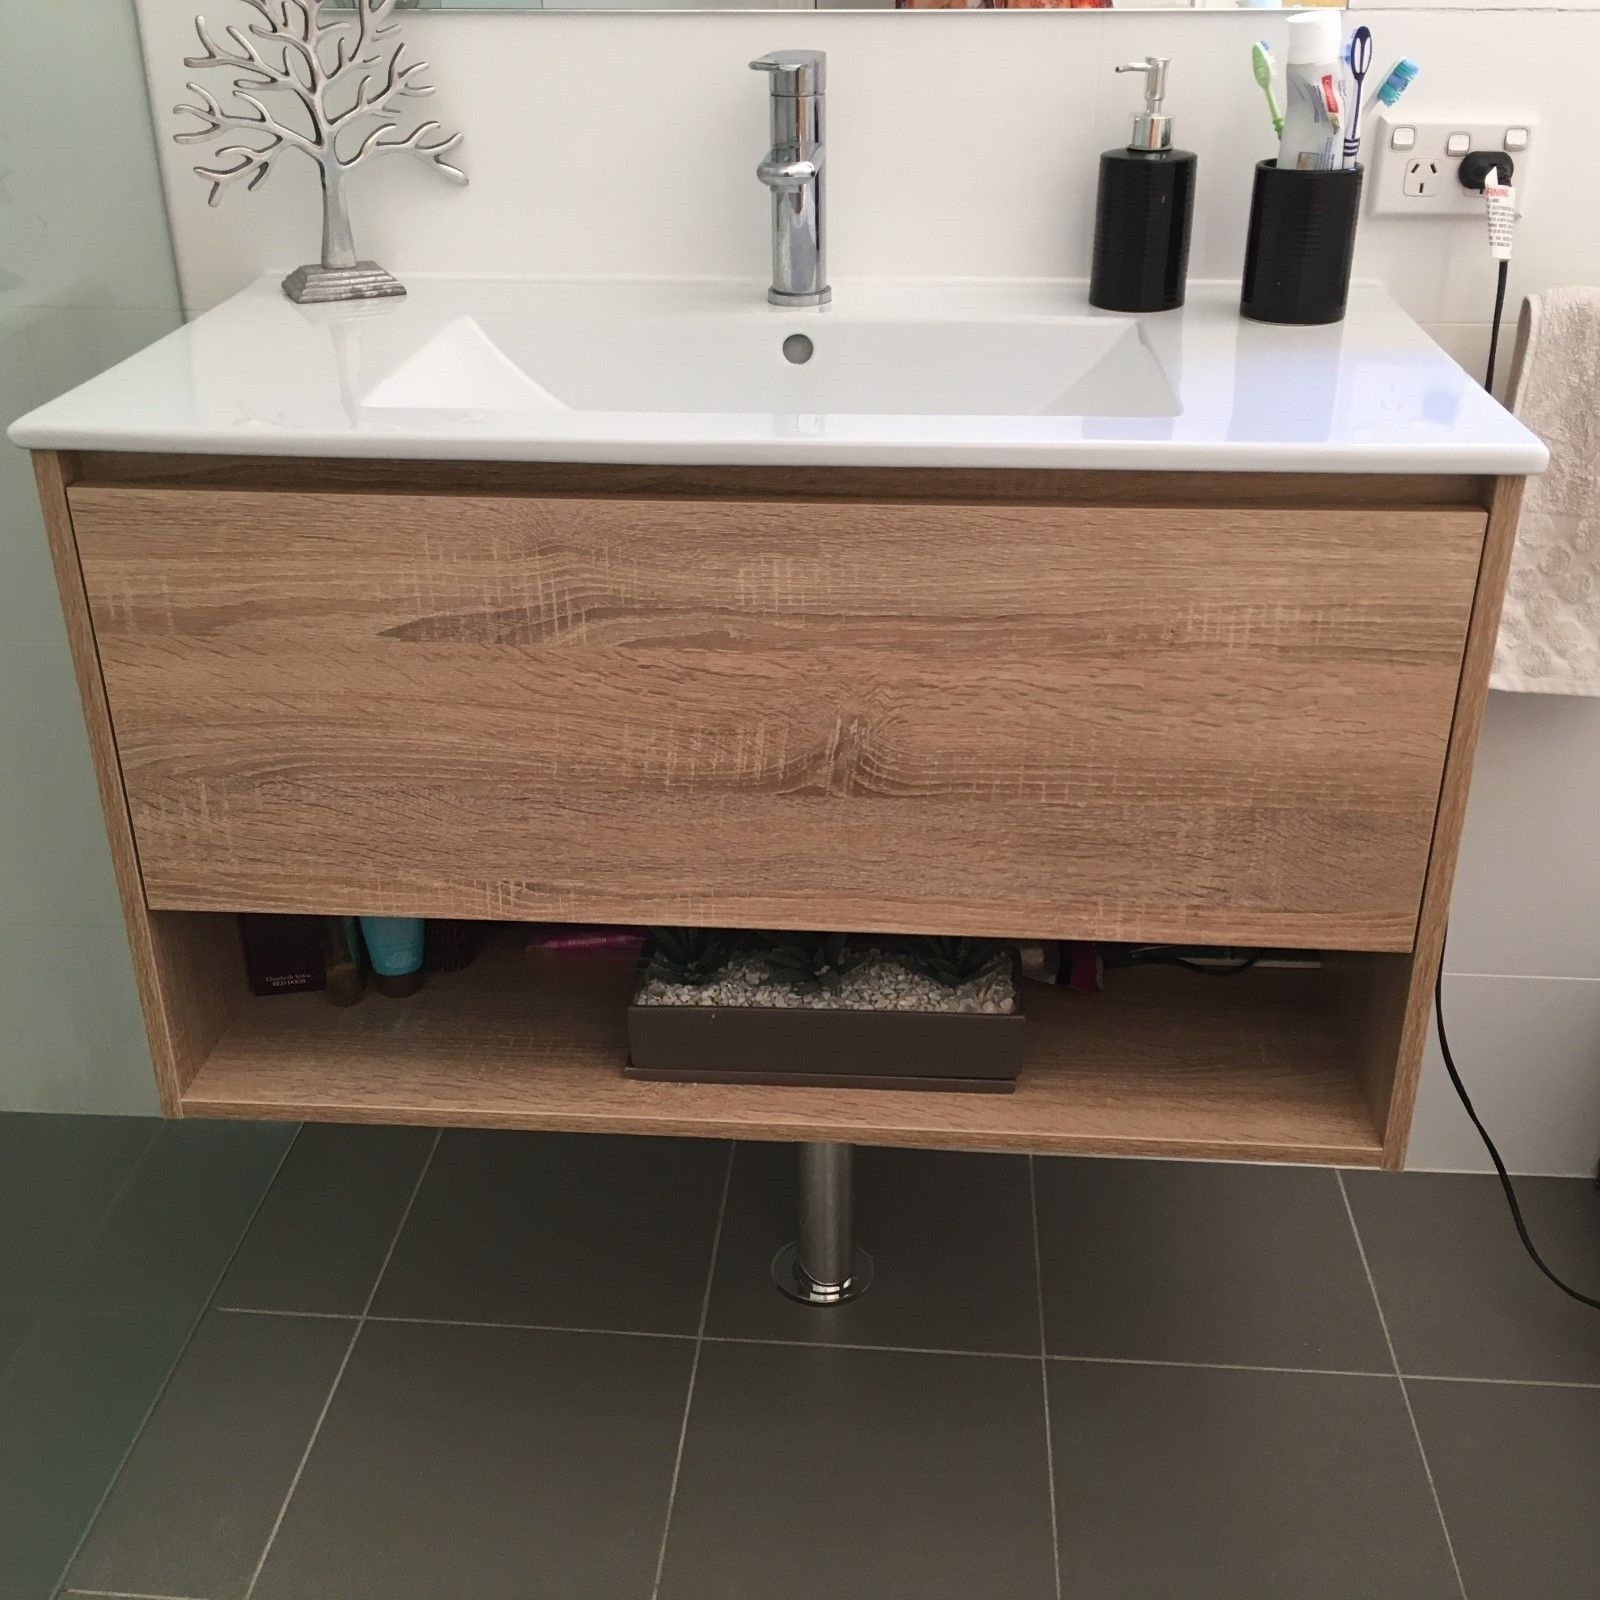 1200mm Bathroom Vanity Eden 1200mm White Oak Textured Timber Wood Grain Wall